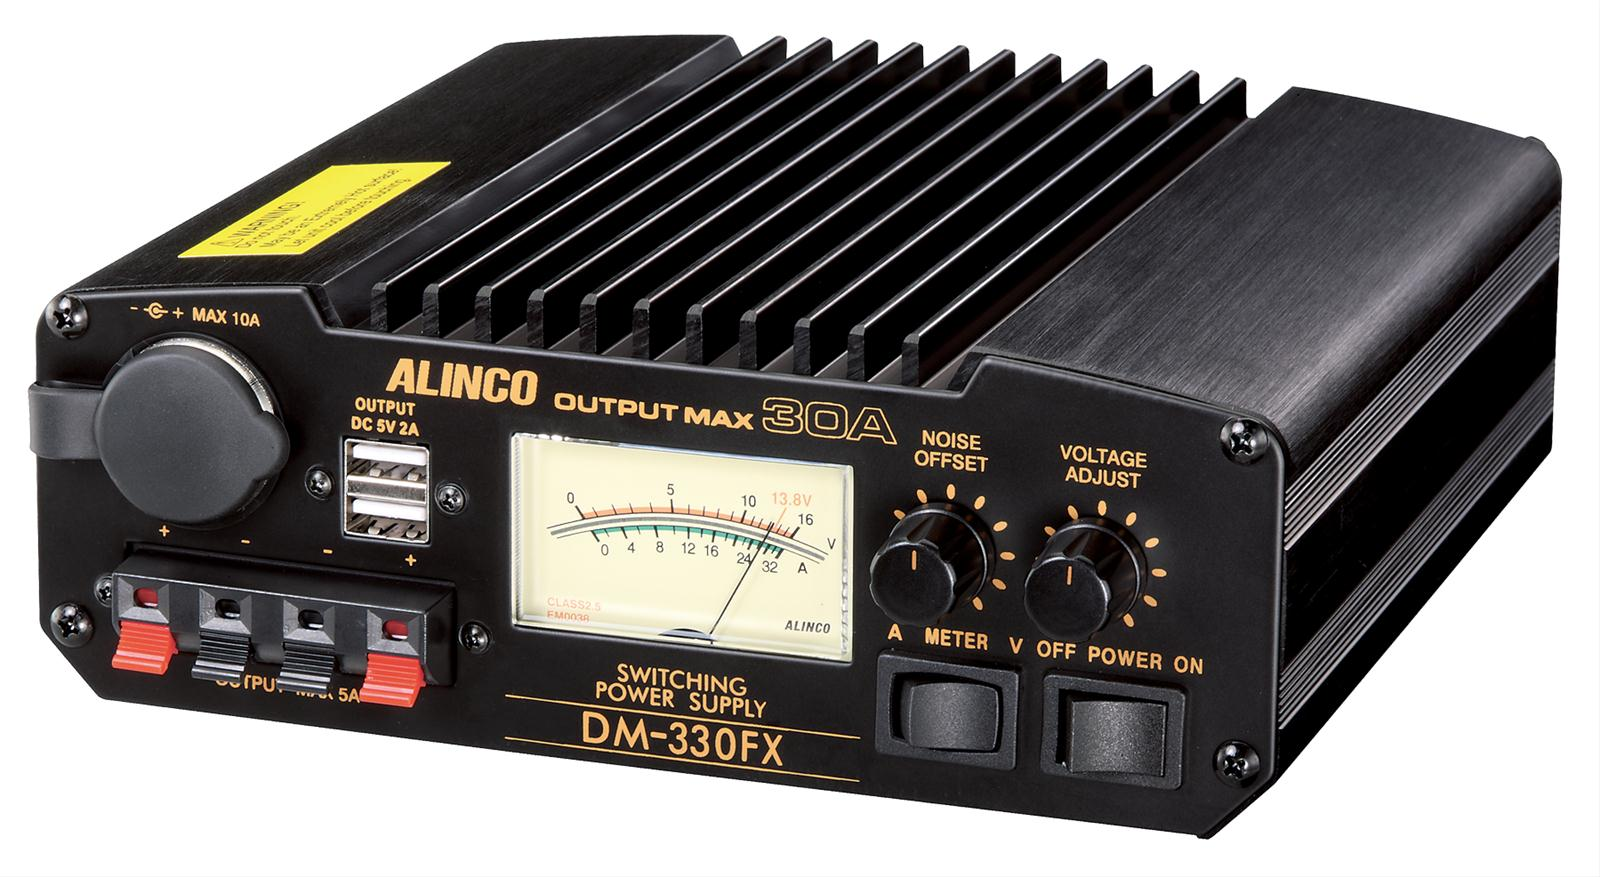 Alinco Dm 330mvt Power Supplies 330fx Free Shipping On Most 138v 10a Supply Orders Over 99 At Dx Engineering